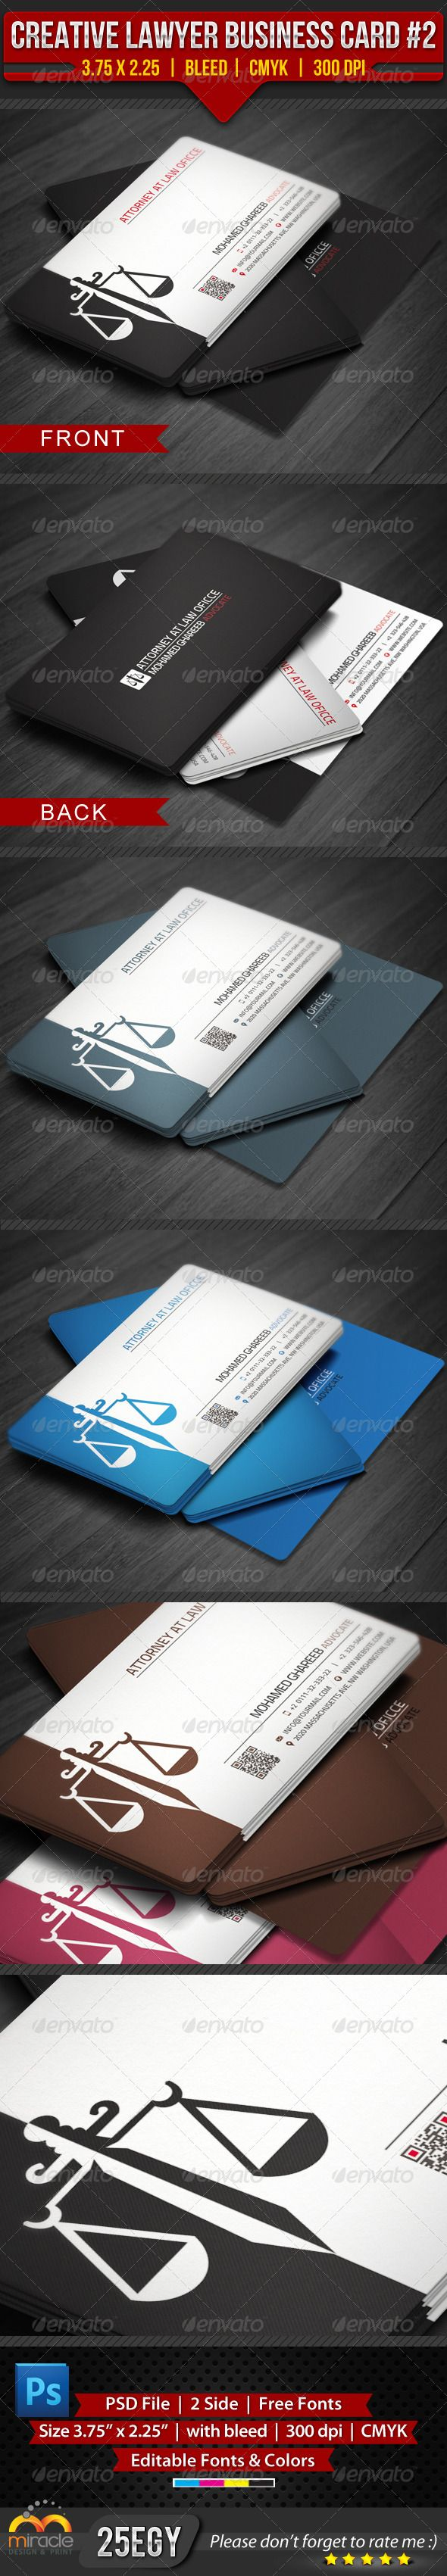 10 Best Business Cards Images On Pinterest Business Card Design